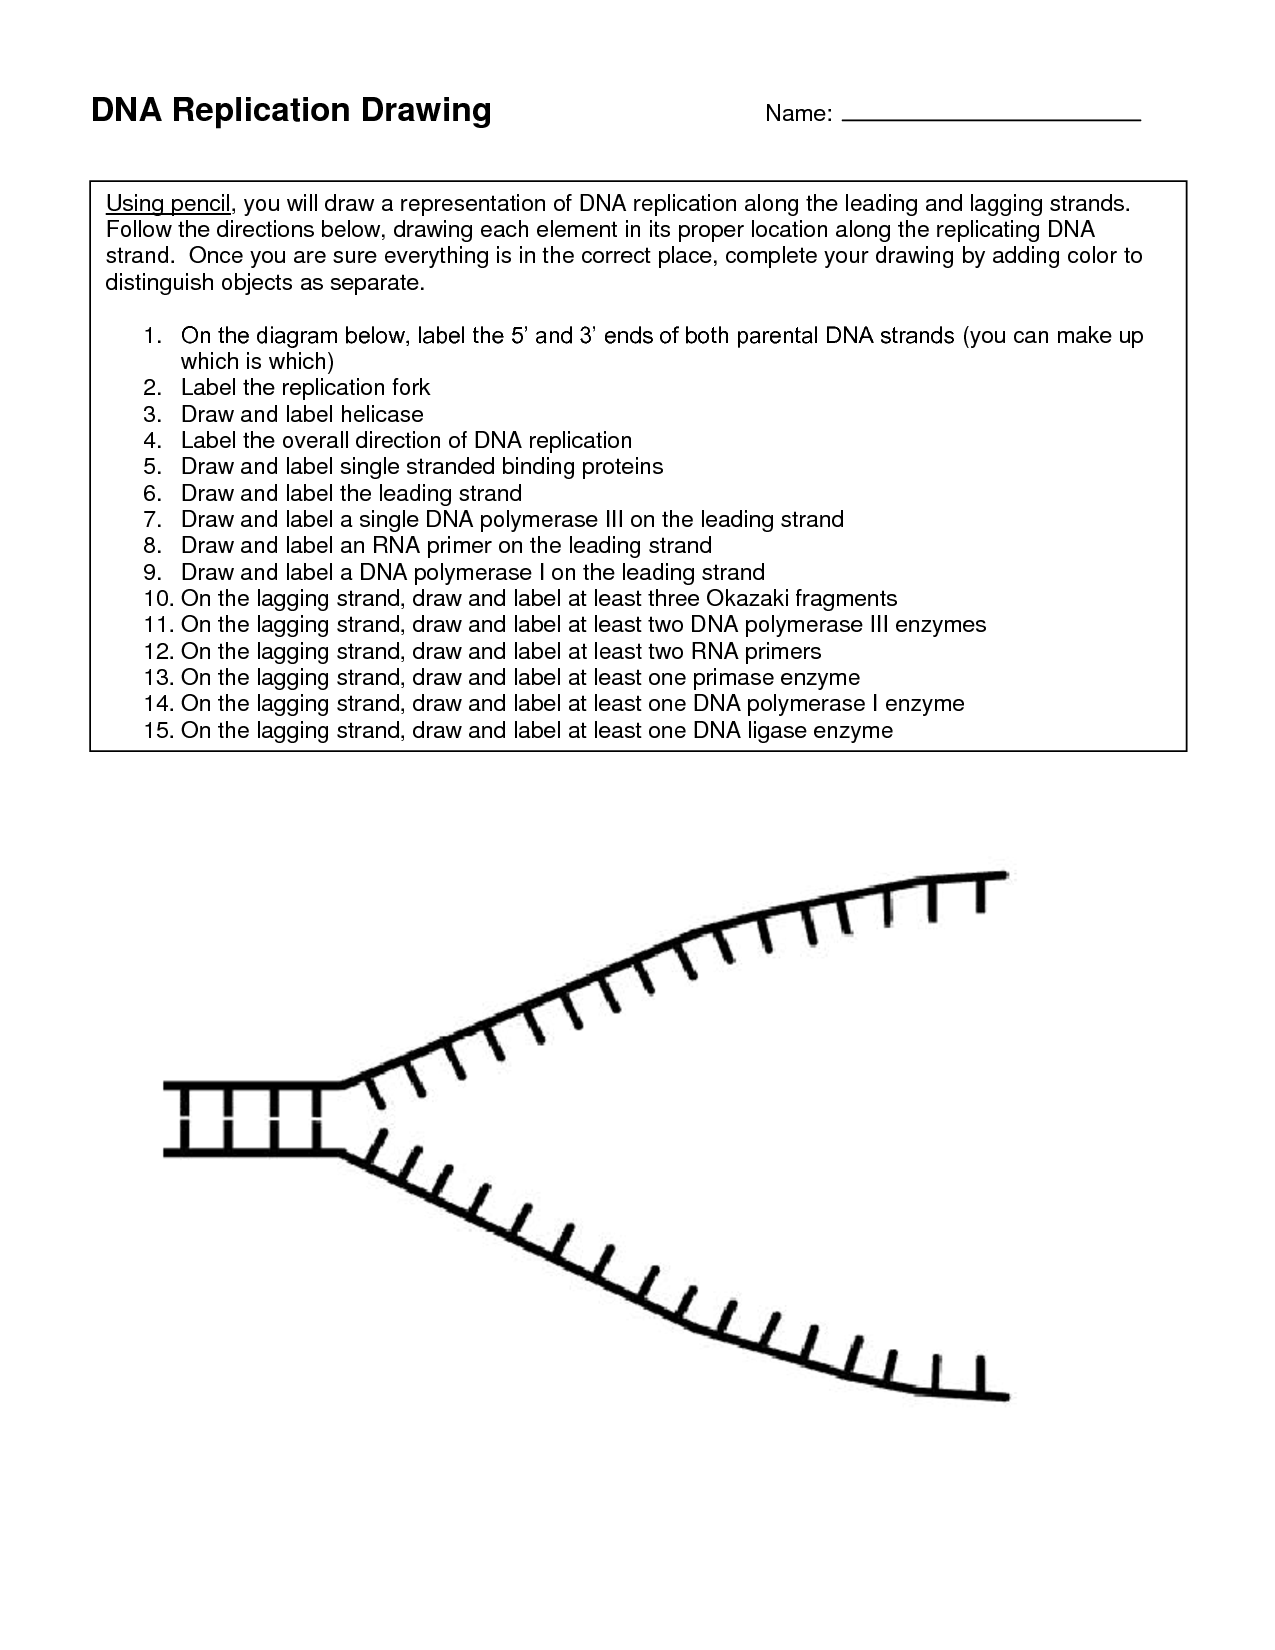 Lambiase Tina Honors Biology – Photosynthesis Review Worksheet Answers